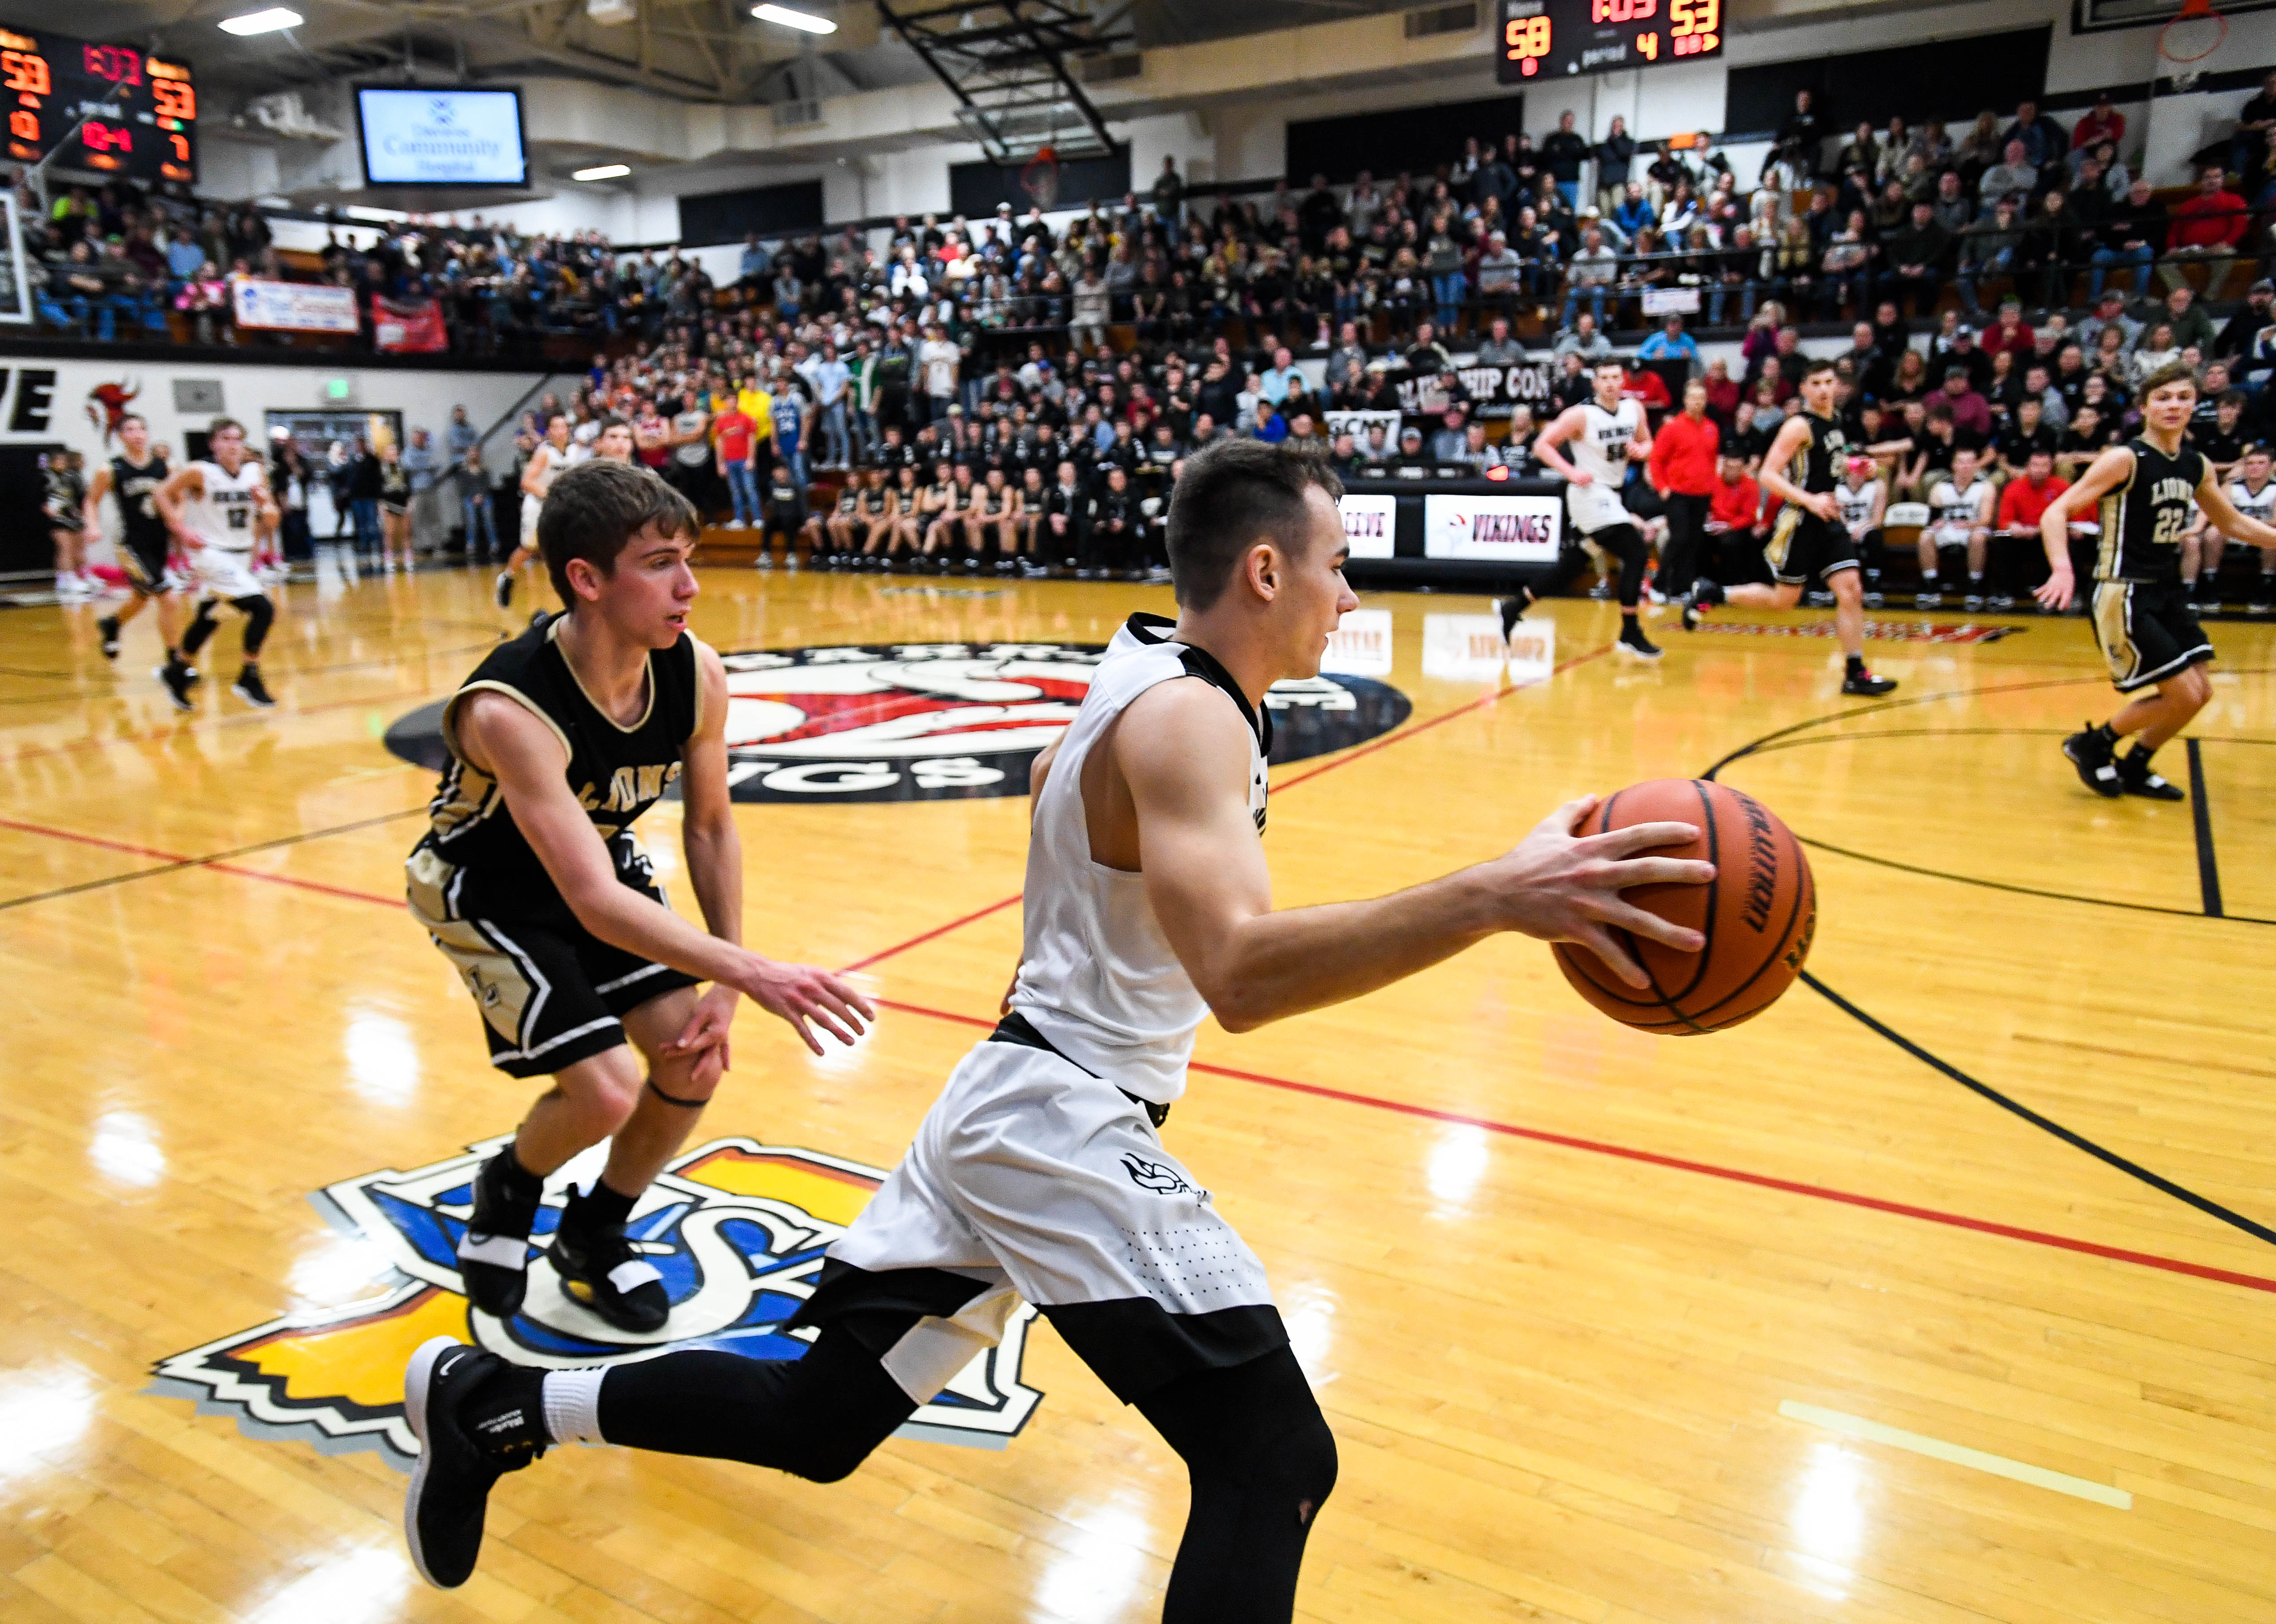 Barr-Reeve's Gabe Gladish (10) drives around Loogootee's Cade Chezem (24) during a rivalry match-up before a packed house in Barr-Reeve's 2,100 seat Kavanaugh Kourt Friday, January 11, 2019.